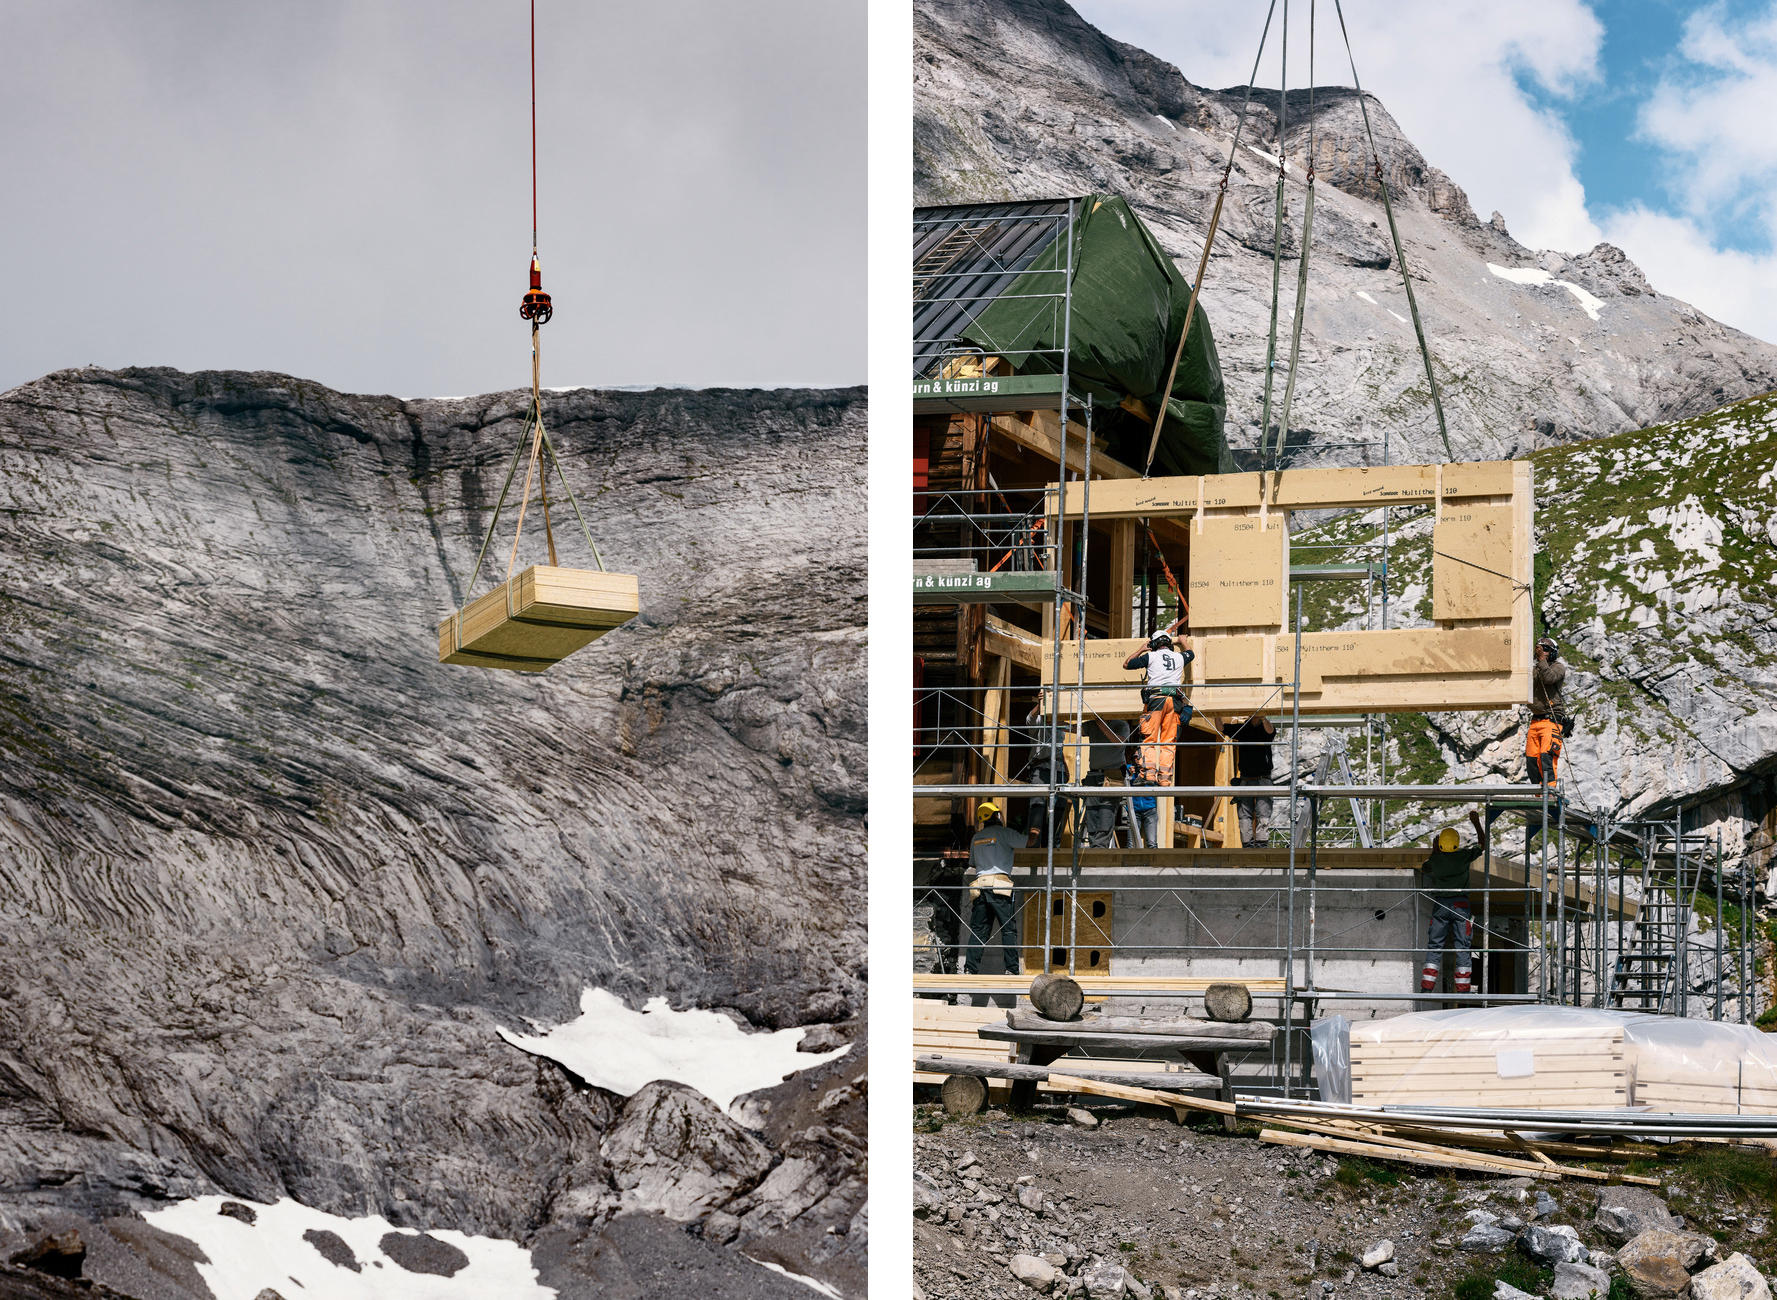 New materials are brought by helicopter for renovatations of the Laemmeren hut.